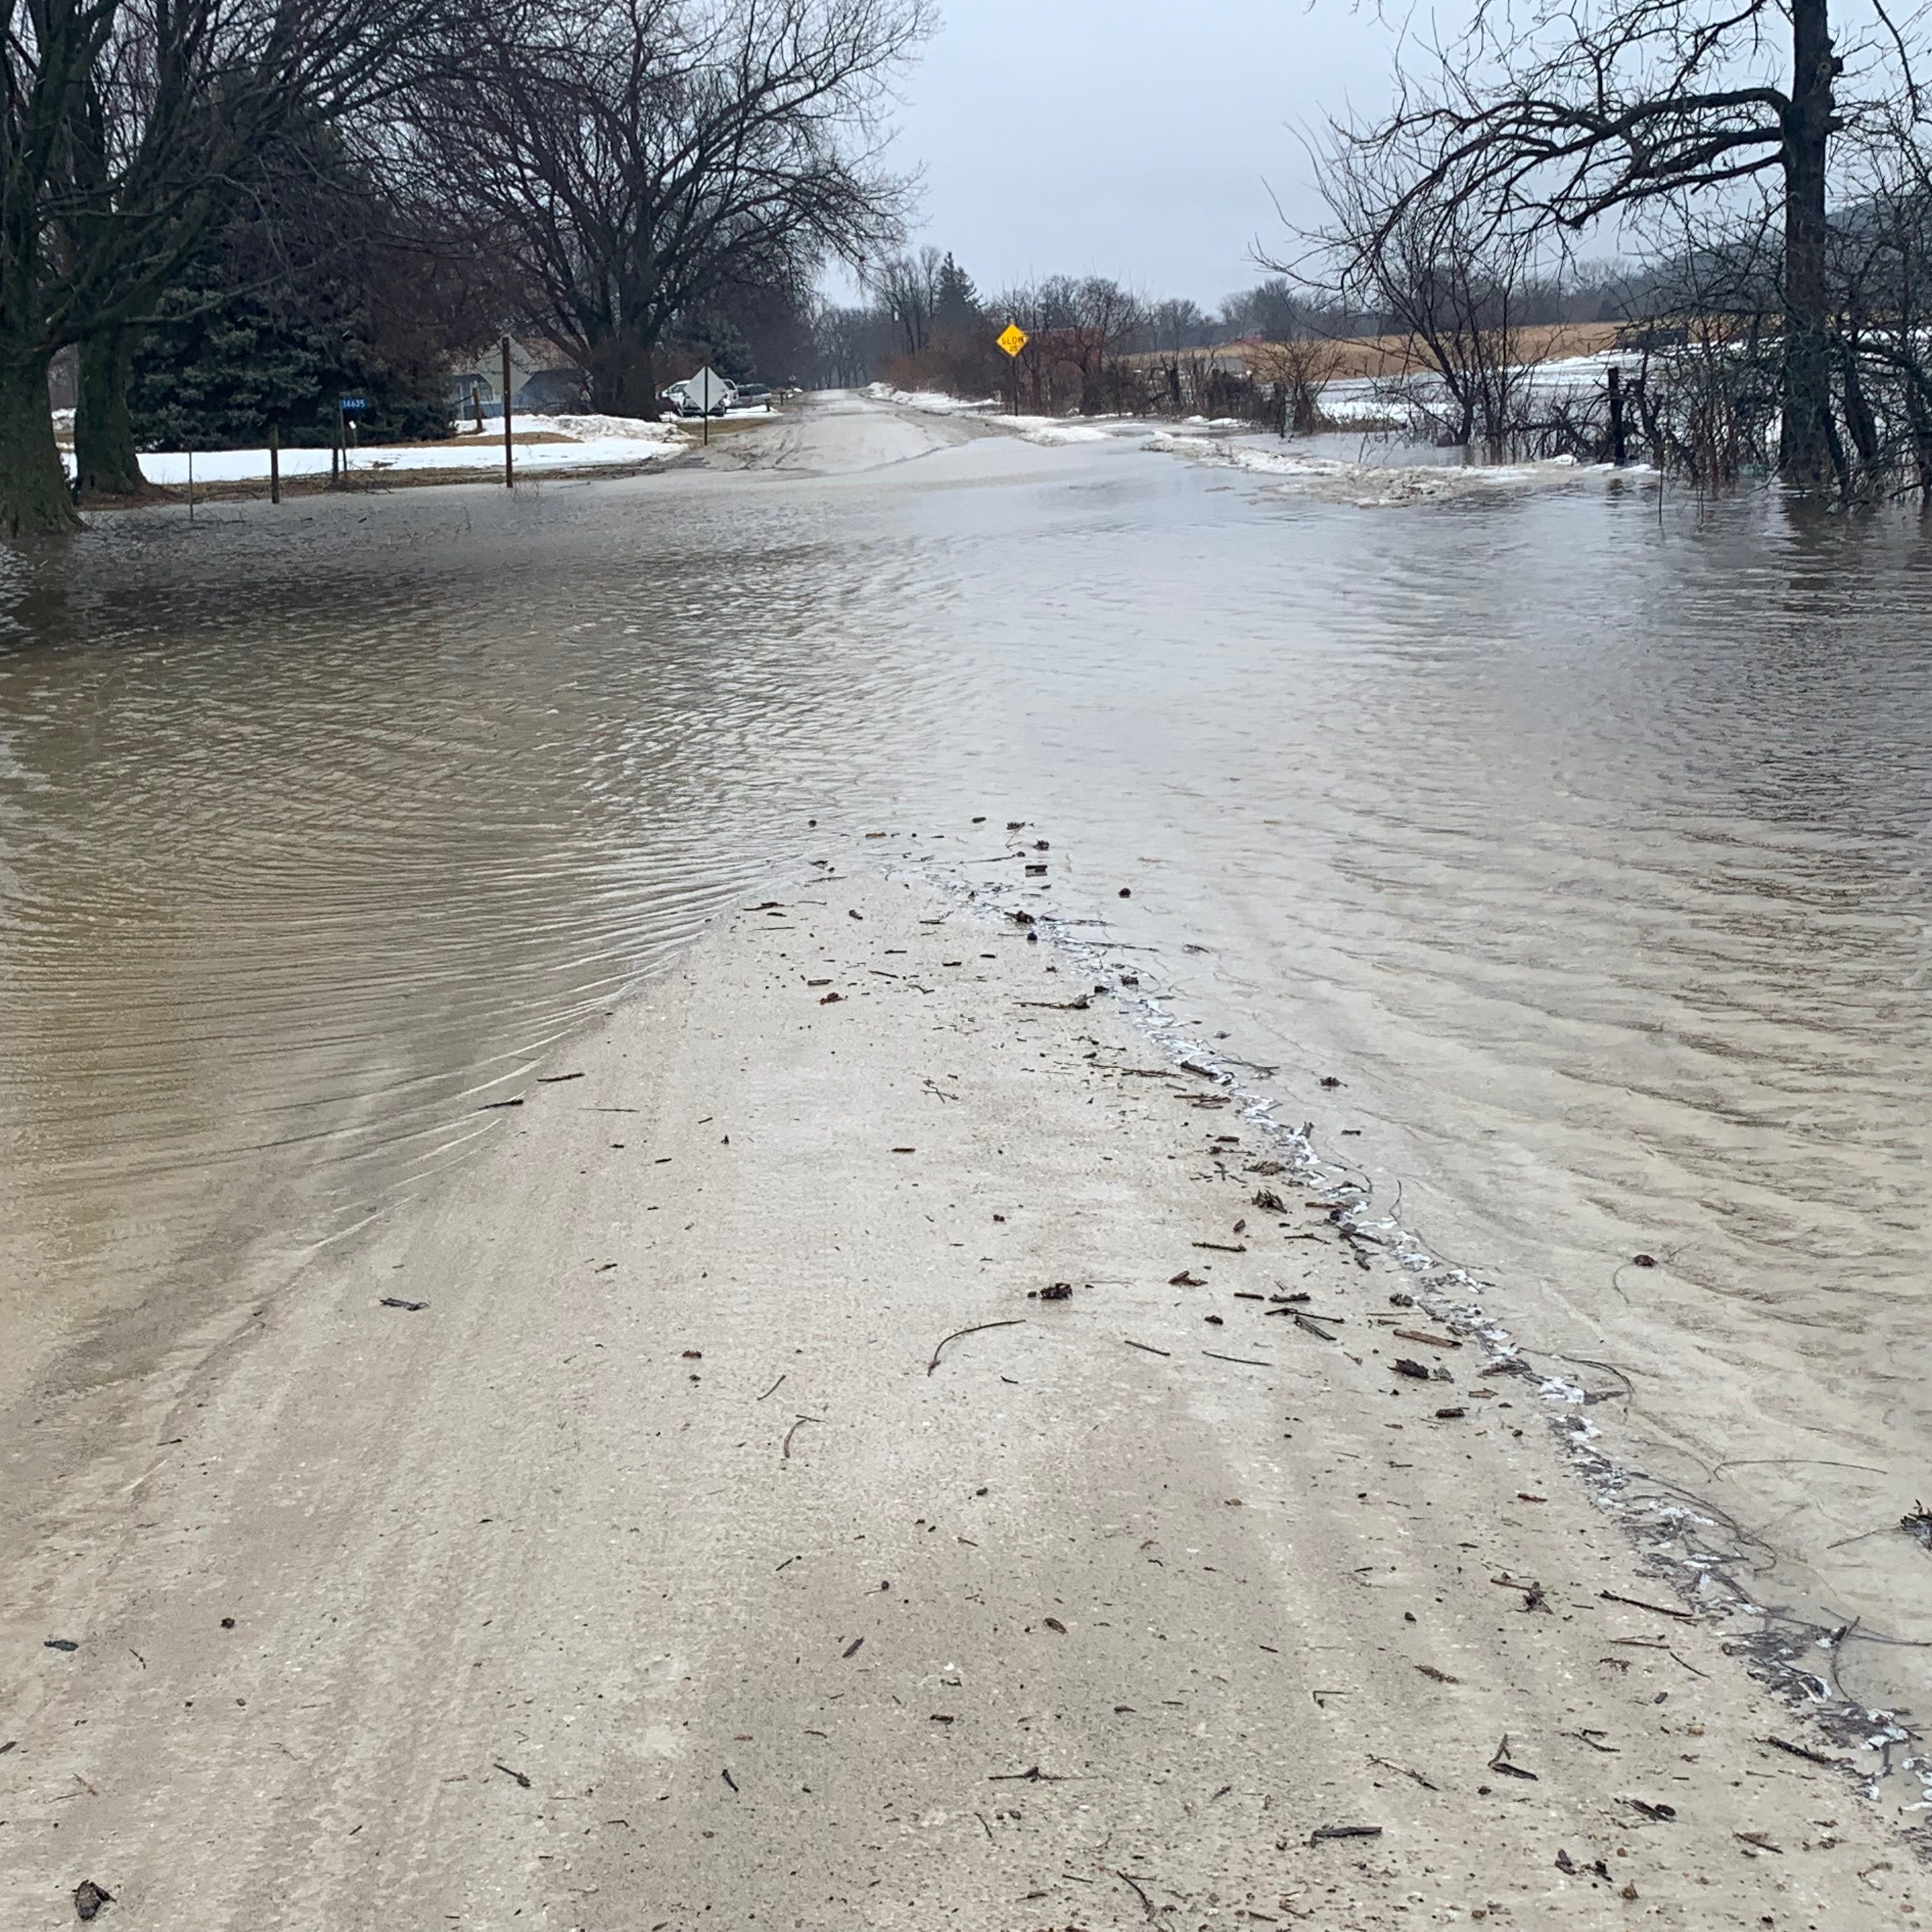 Western Iowa town declares state of emergency, evacuates because of rising floodwaters